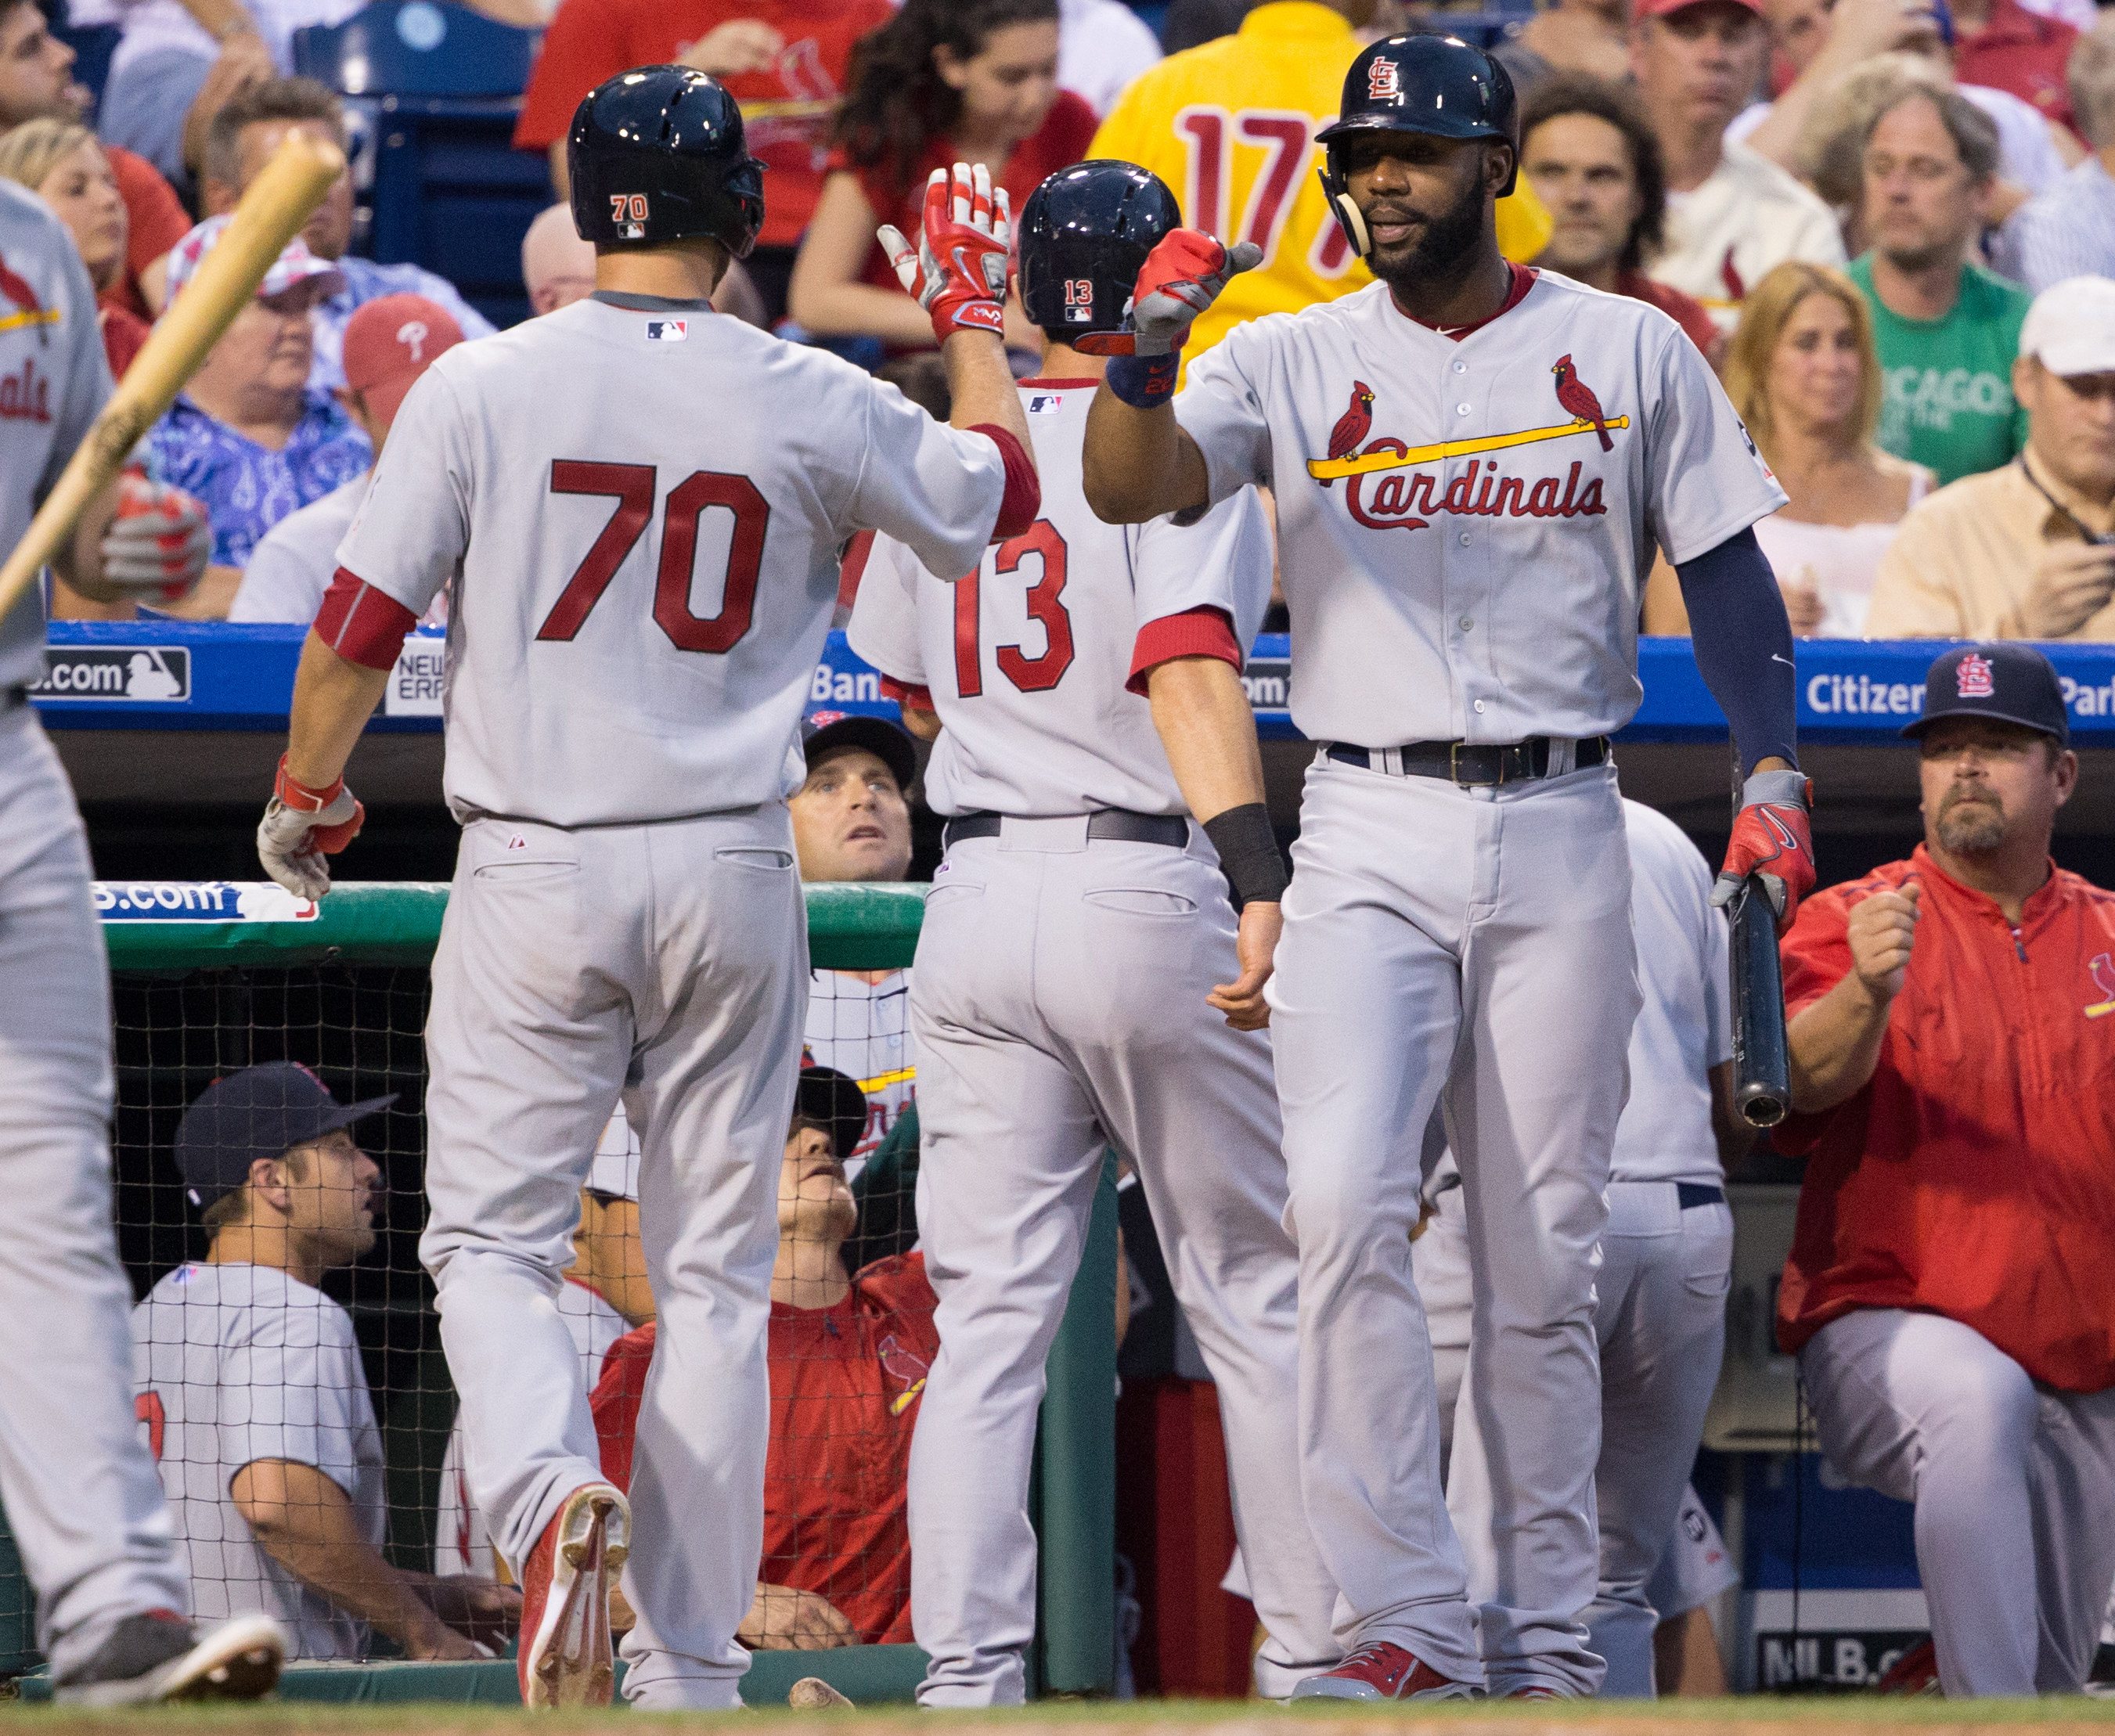 cb87f872d Best players by number in St. Louis Cardinals history  99-70